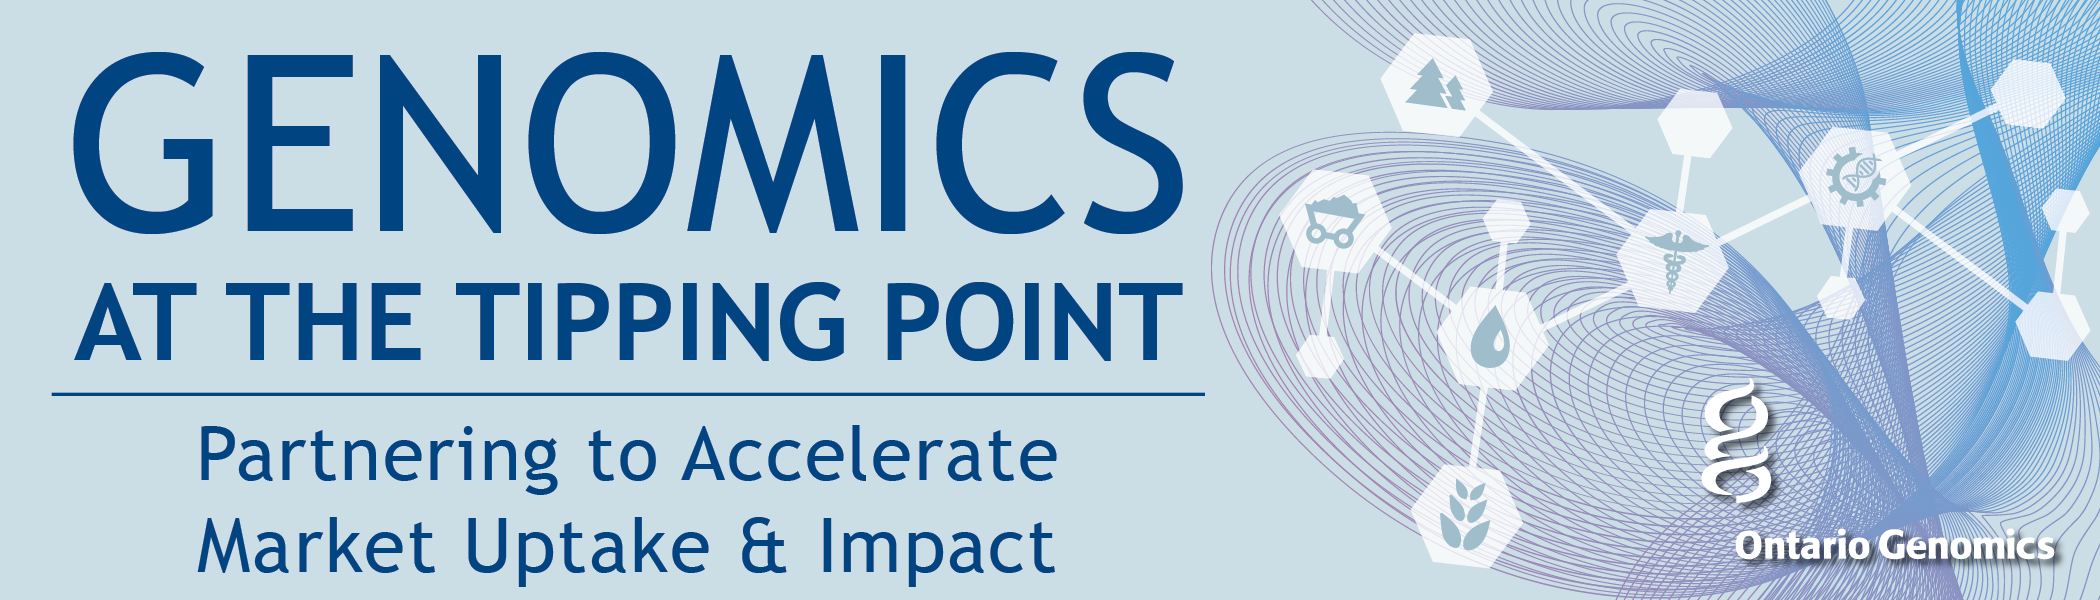 Genomics at the Tipping Point